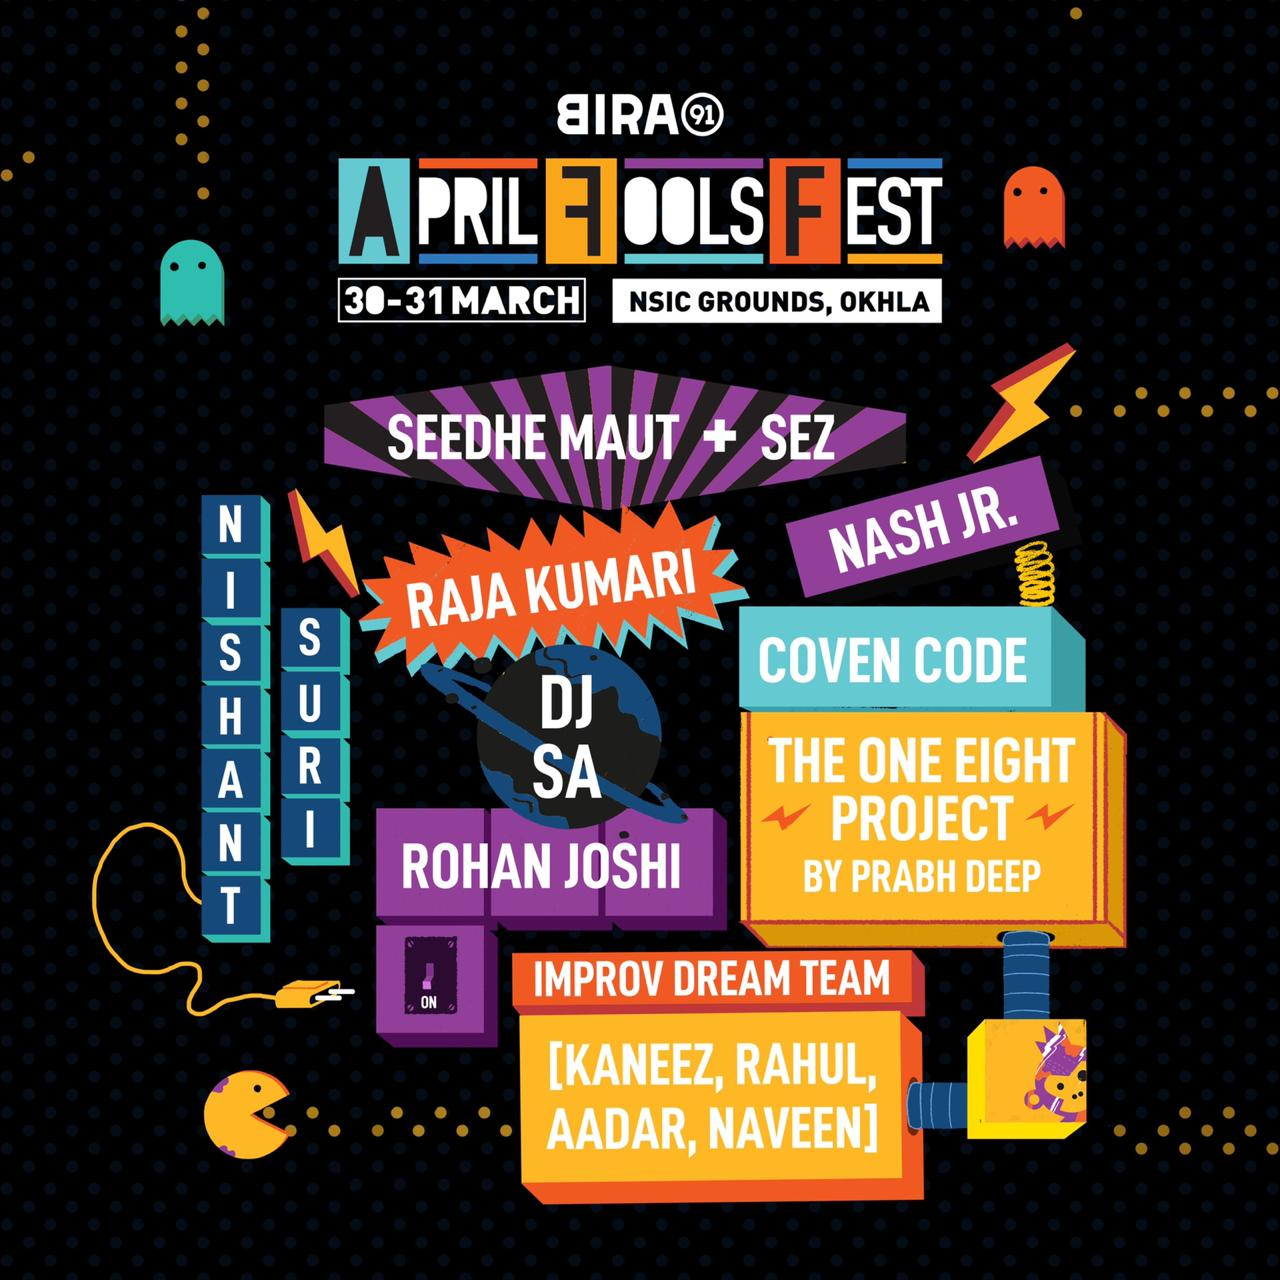 Line-up announcement- Bira 91 April Fools' Fest